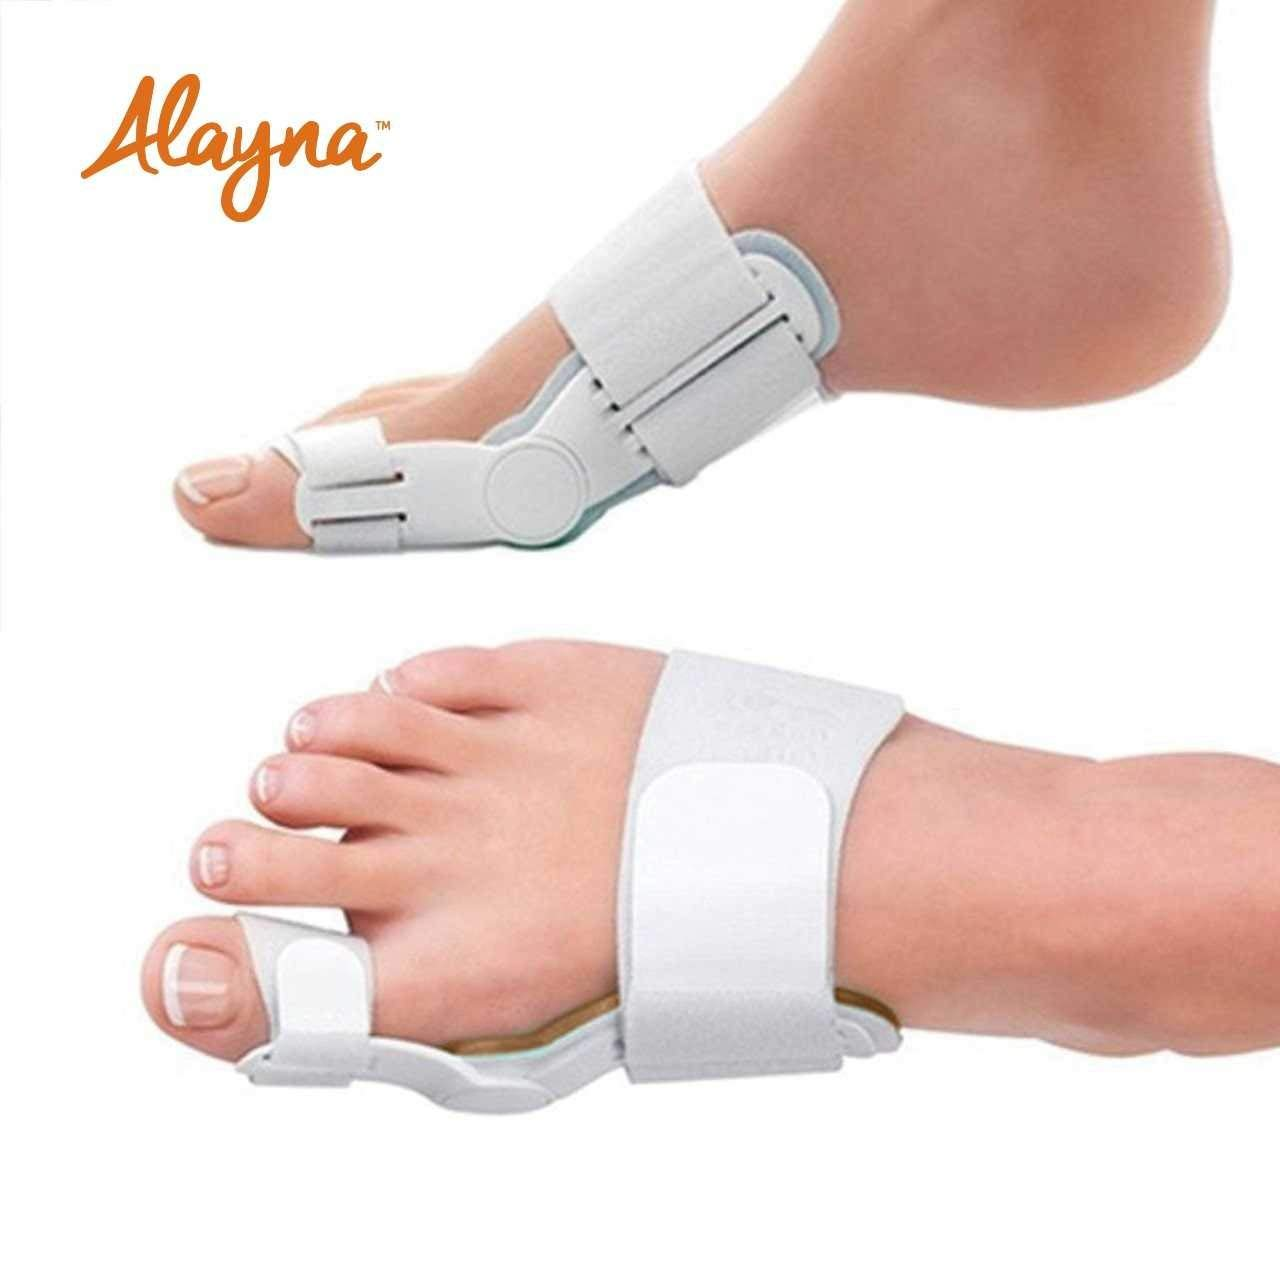 Bunion Corrector and Bunion Relief Orthopedic Bunion Splint Pads for Men and Women Hammer Toe Straightener and Bunion Protector Cushions- Relieve Hallux Valgus Foot Pain and Soothe Sore Bunions by Alayna (Image #2)